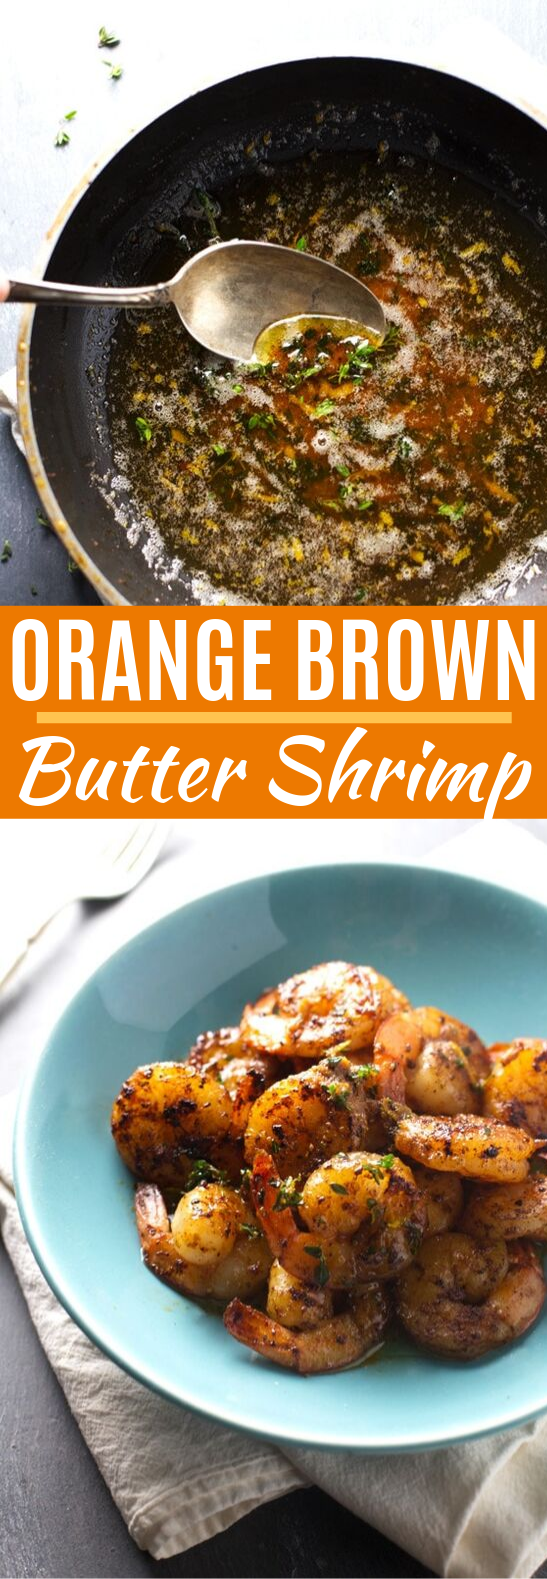 Orange Brown Butter Shrimp #dinner #seafood